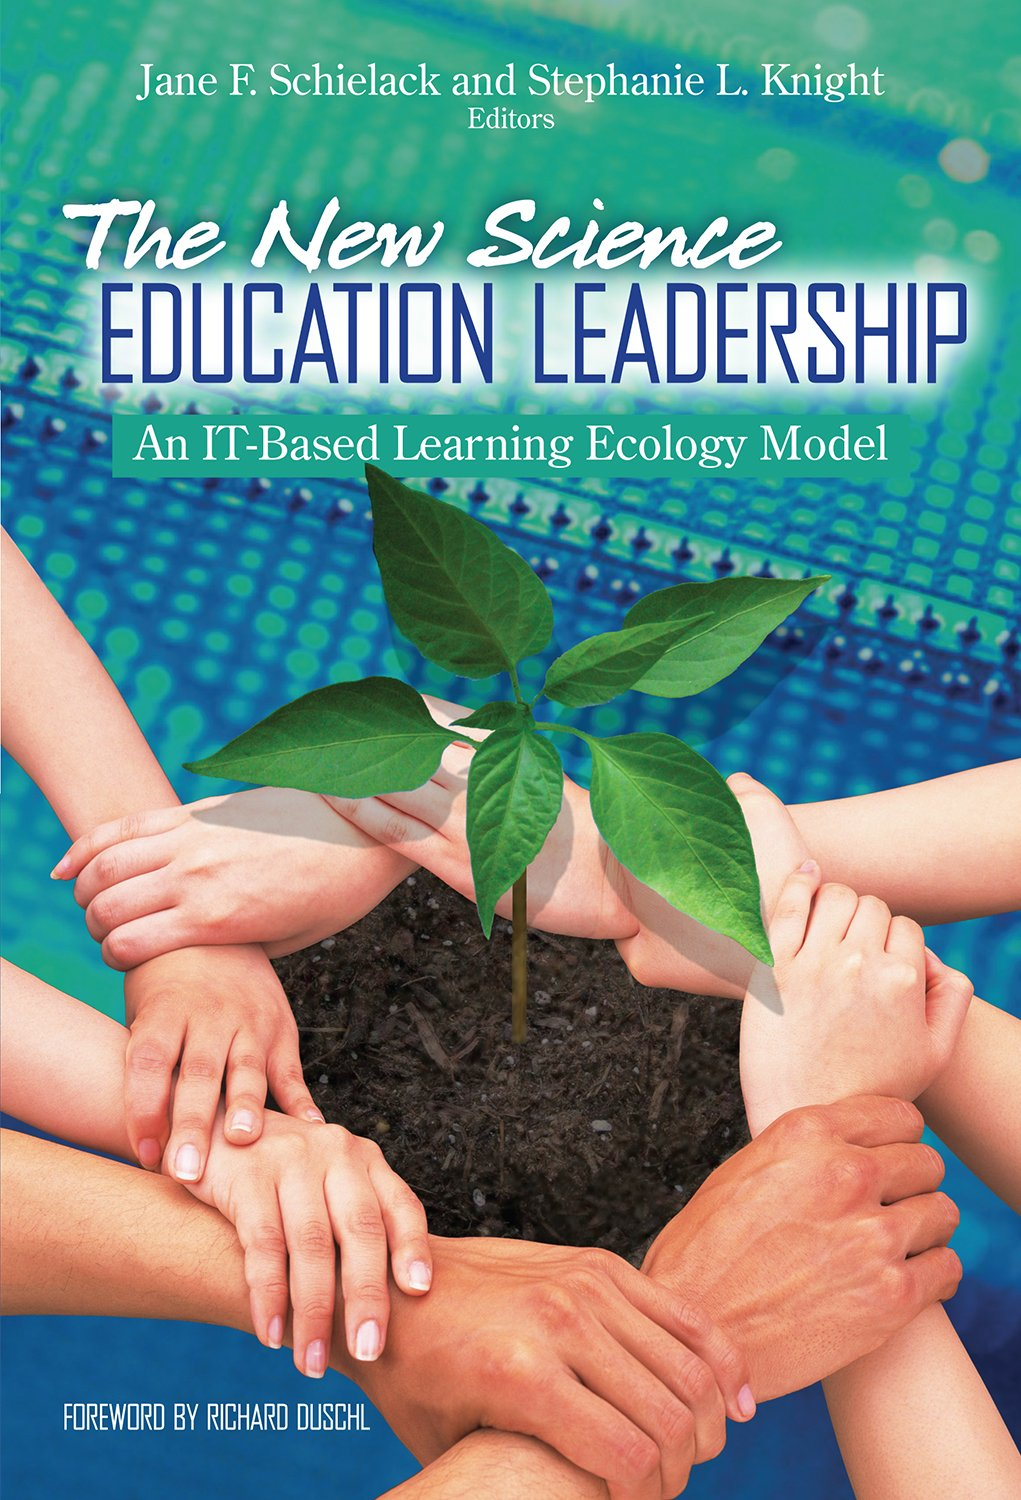 The New Science Education Leadership: An IT-Based Learning Ecology Model (Technology, Education--Connections (The TEC Series)) pdf epub